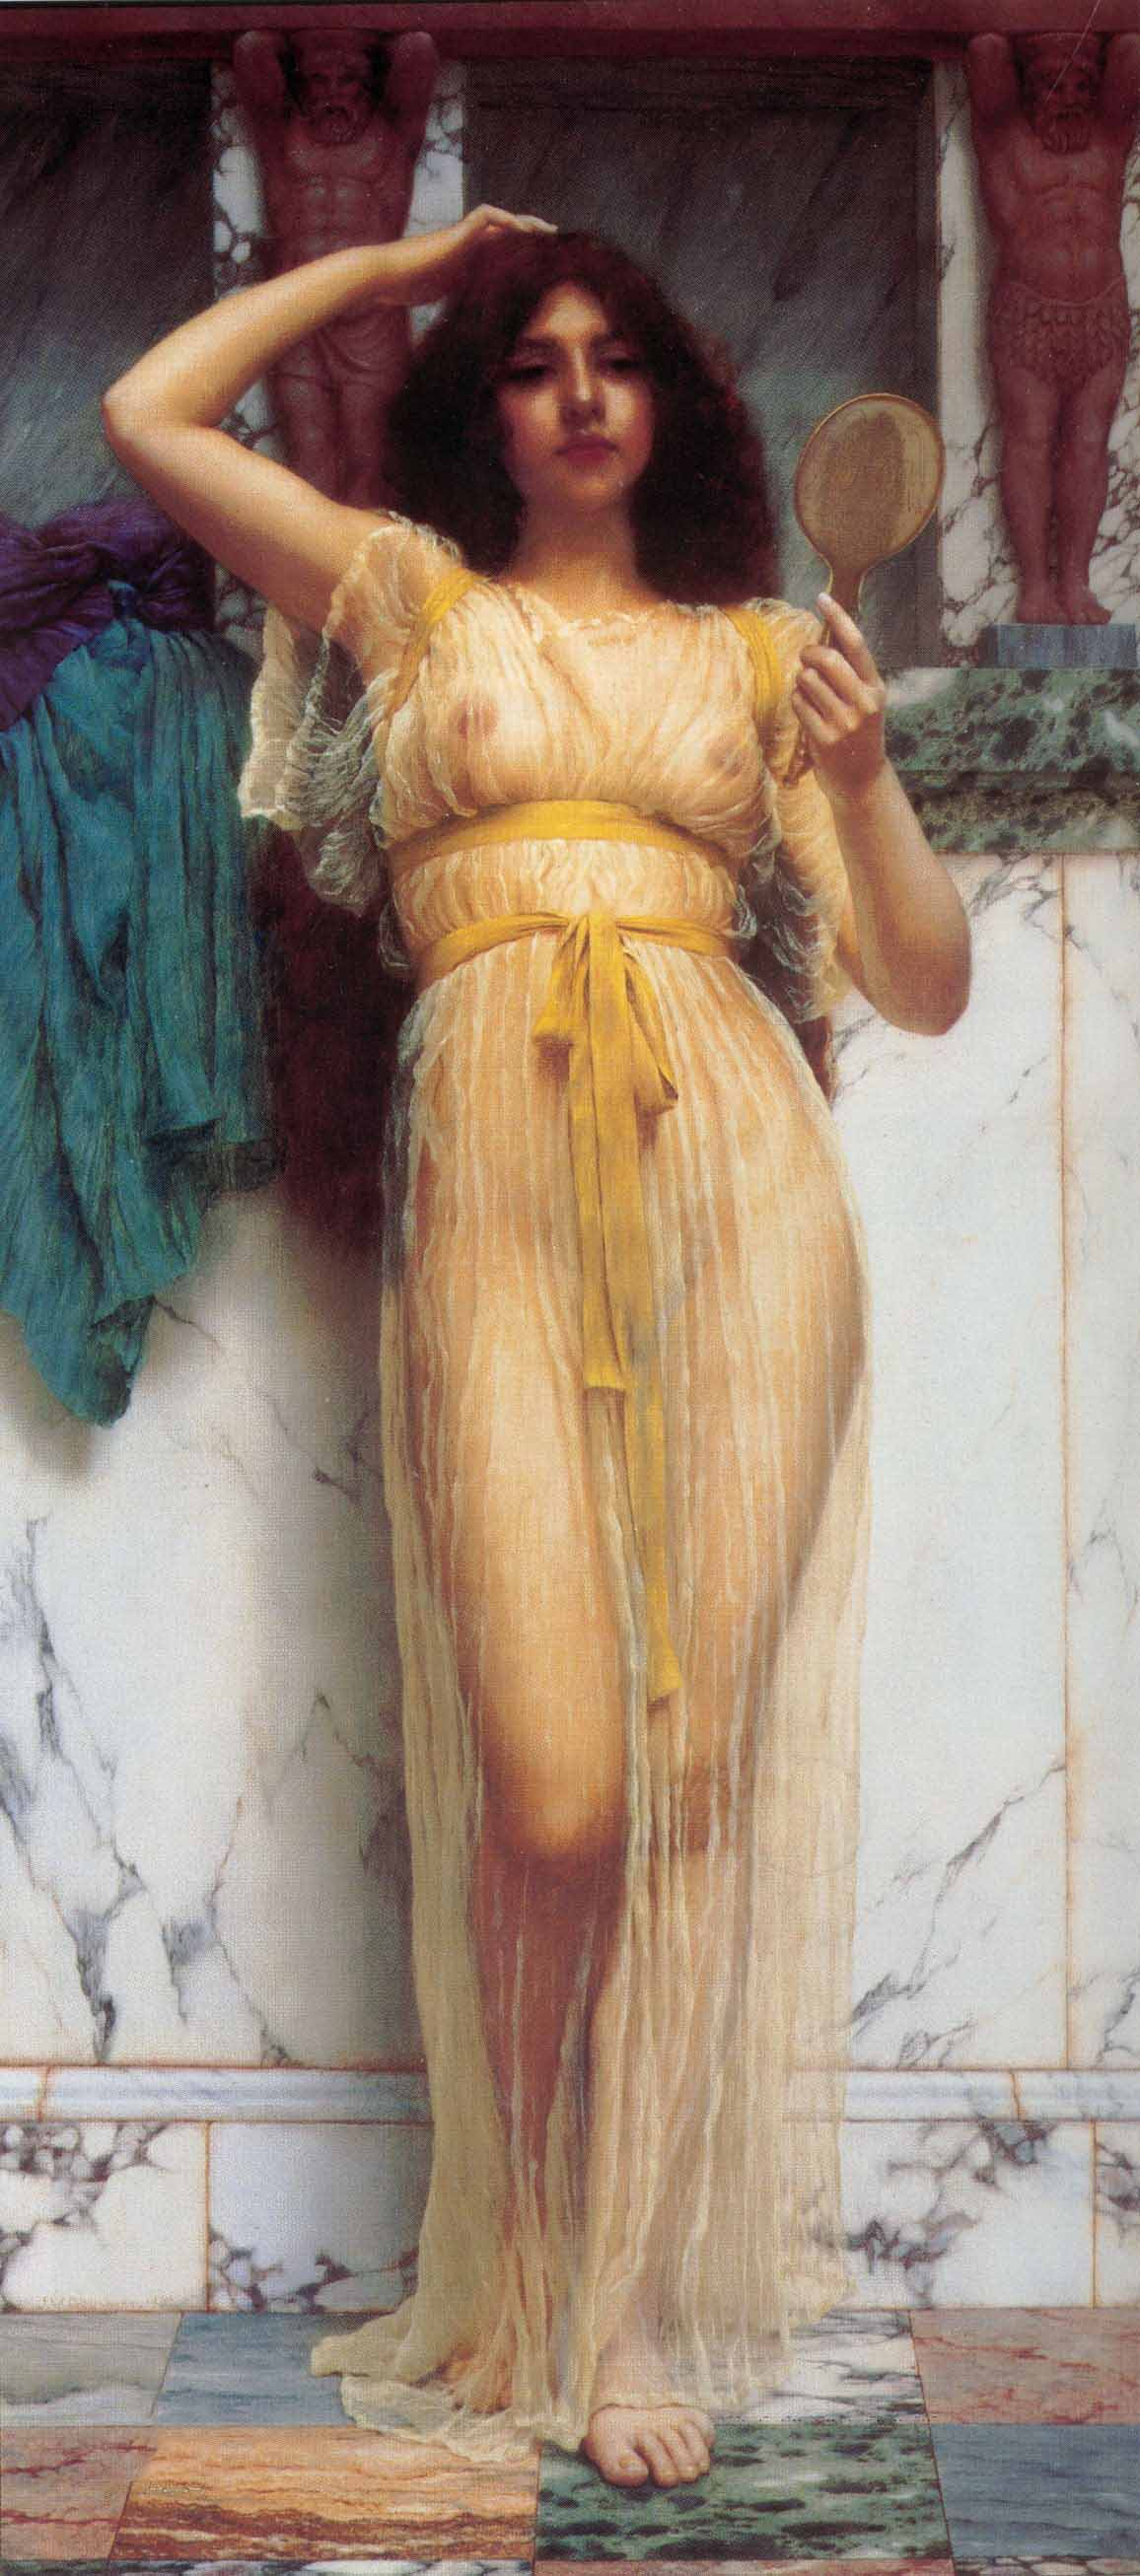 Джон Уильям Годвард (Godward John William). Зеркальце 1899